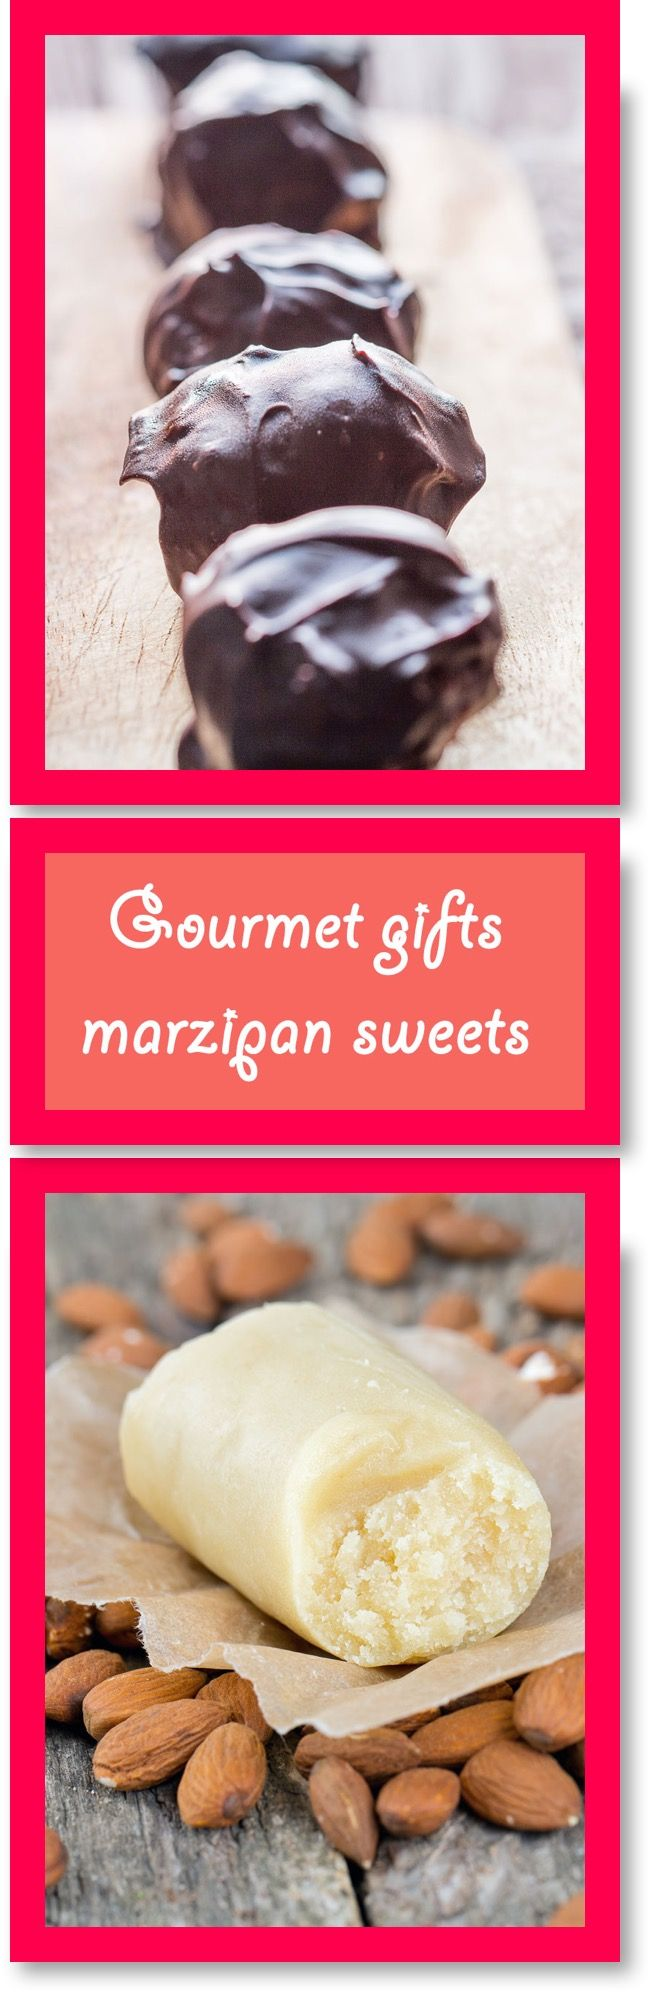 Save money this Christmas and make your own gourmet gifts and hampers! These are really easy to make and are a great way of using up left over marzipan.